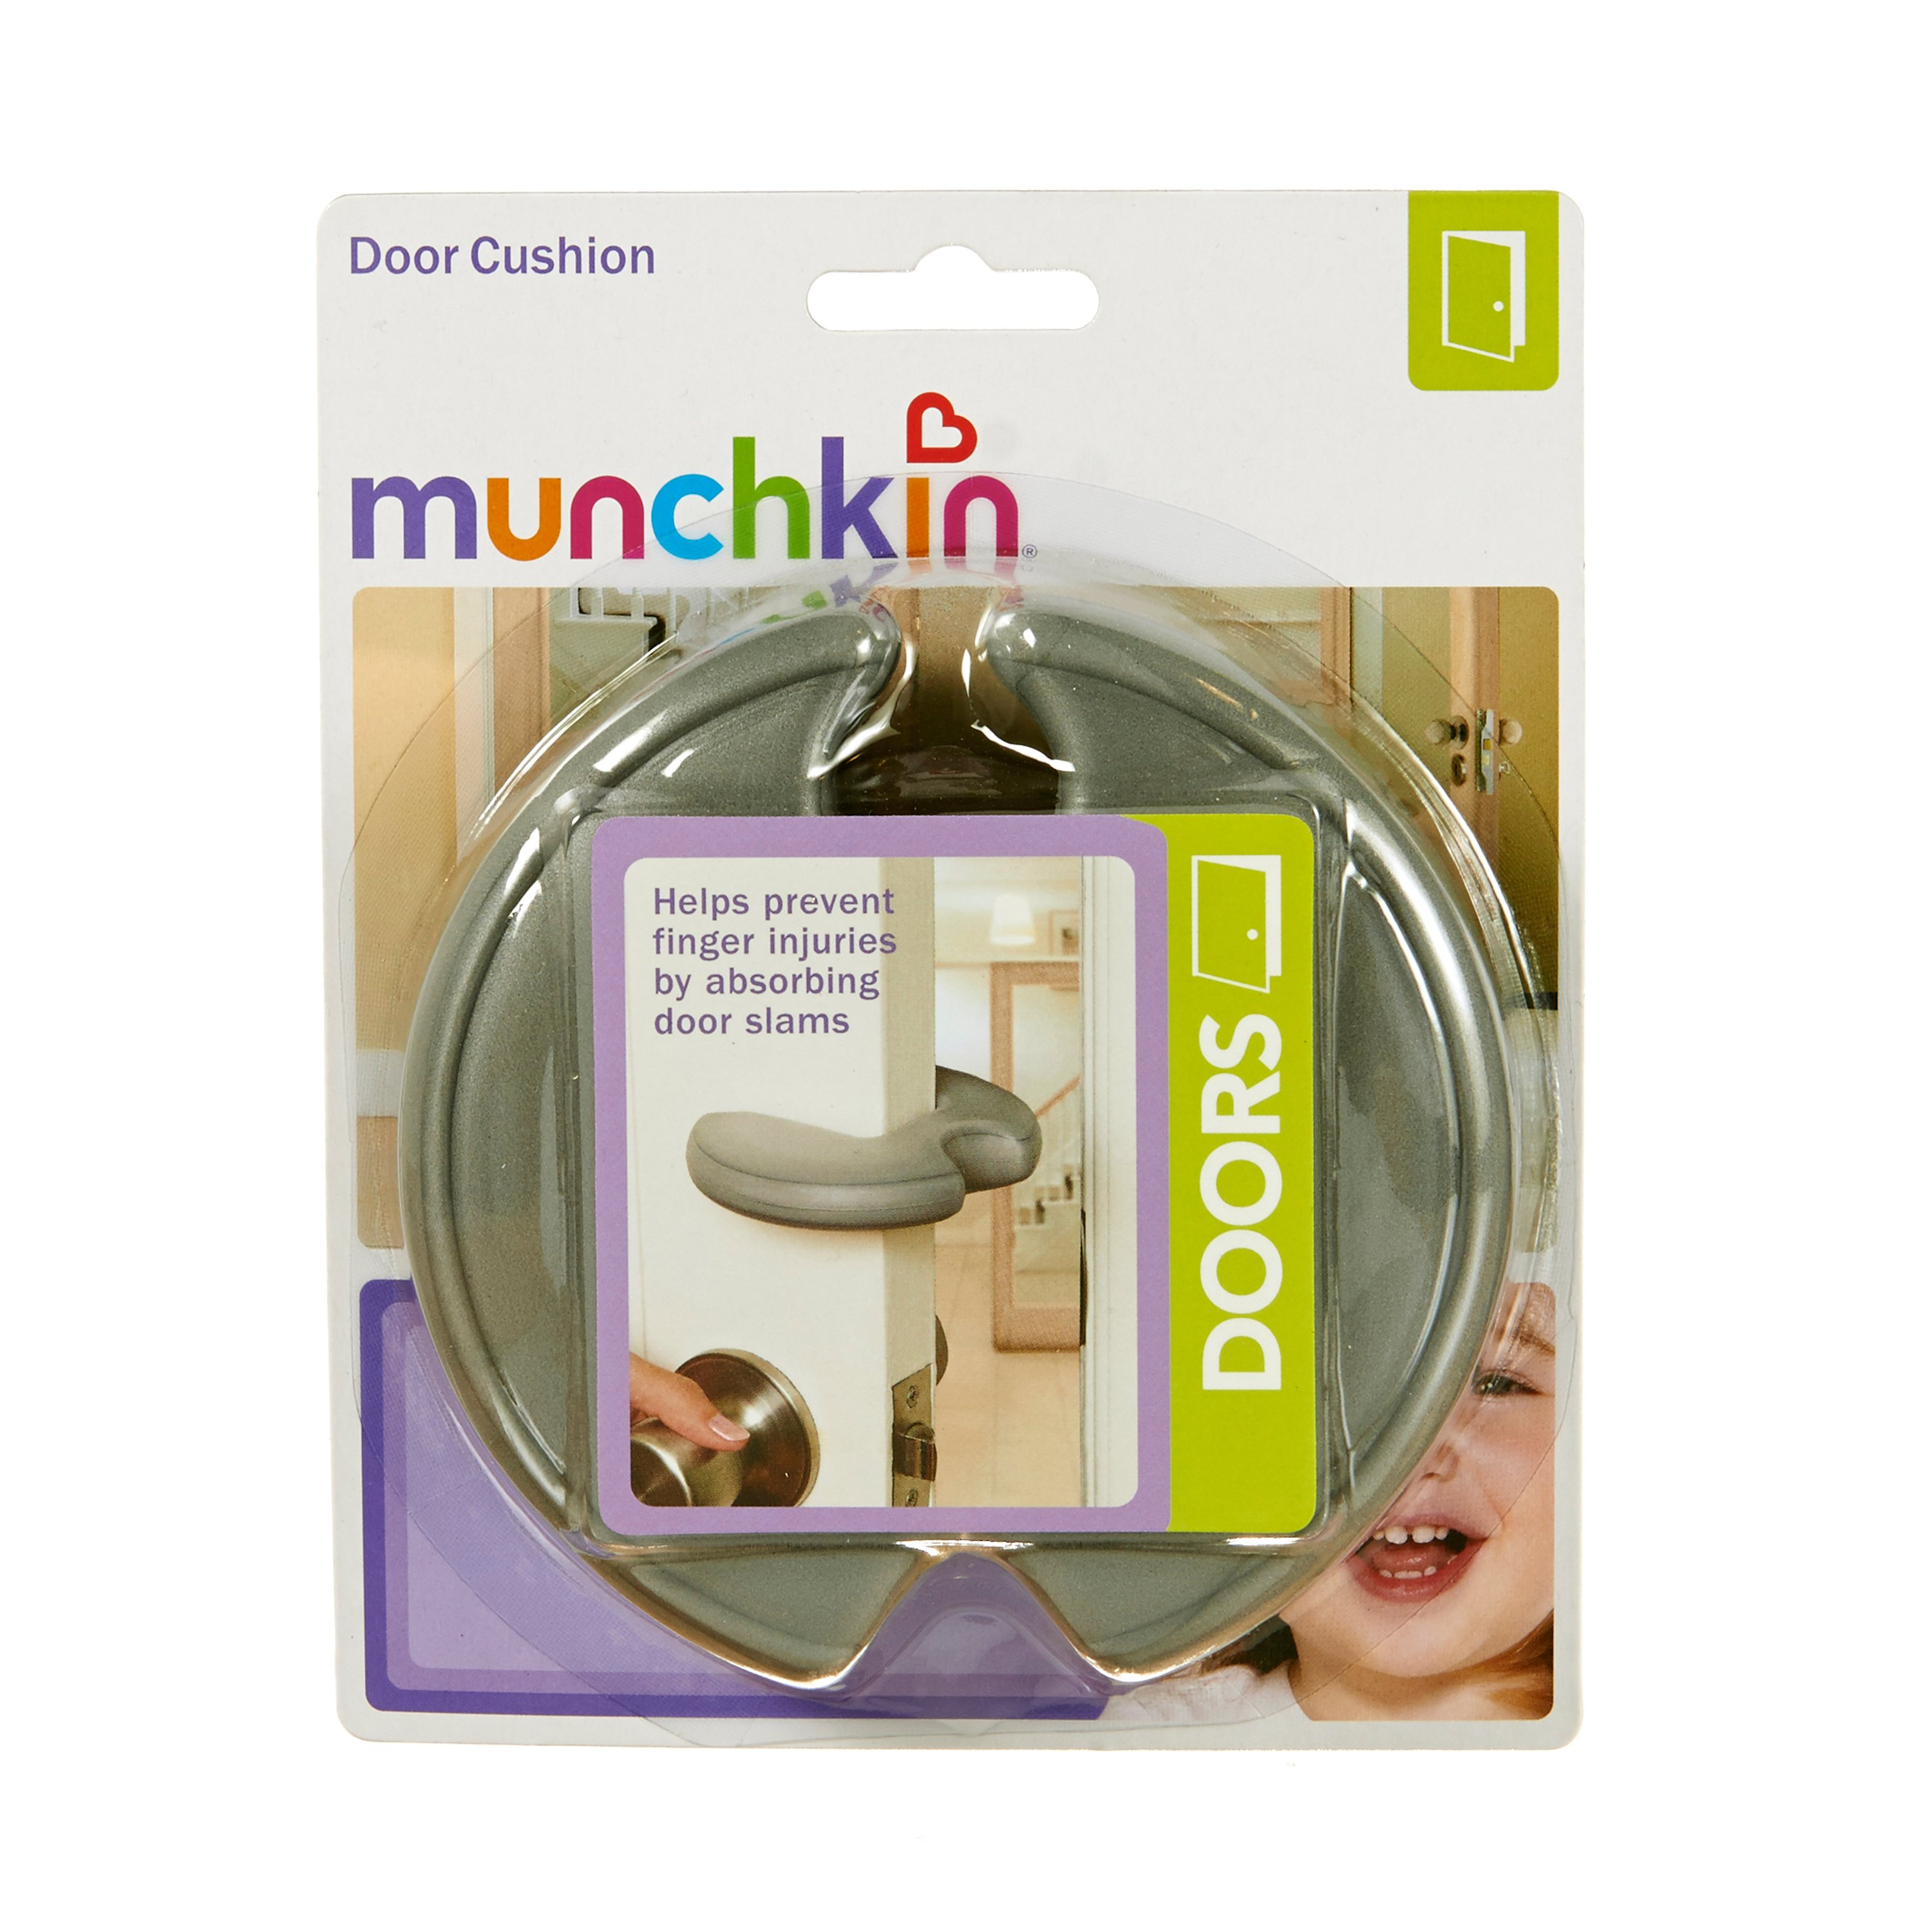 sc 1 st  HEB.com & Munchkin Door Cushion - Shop Baby Proofing Accessories at HEB